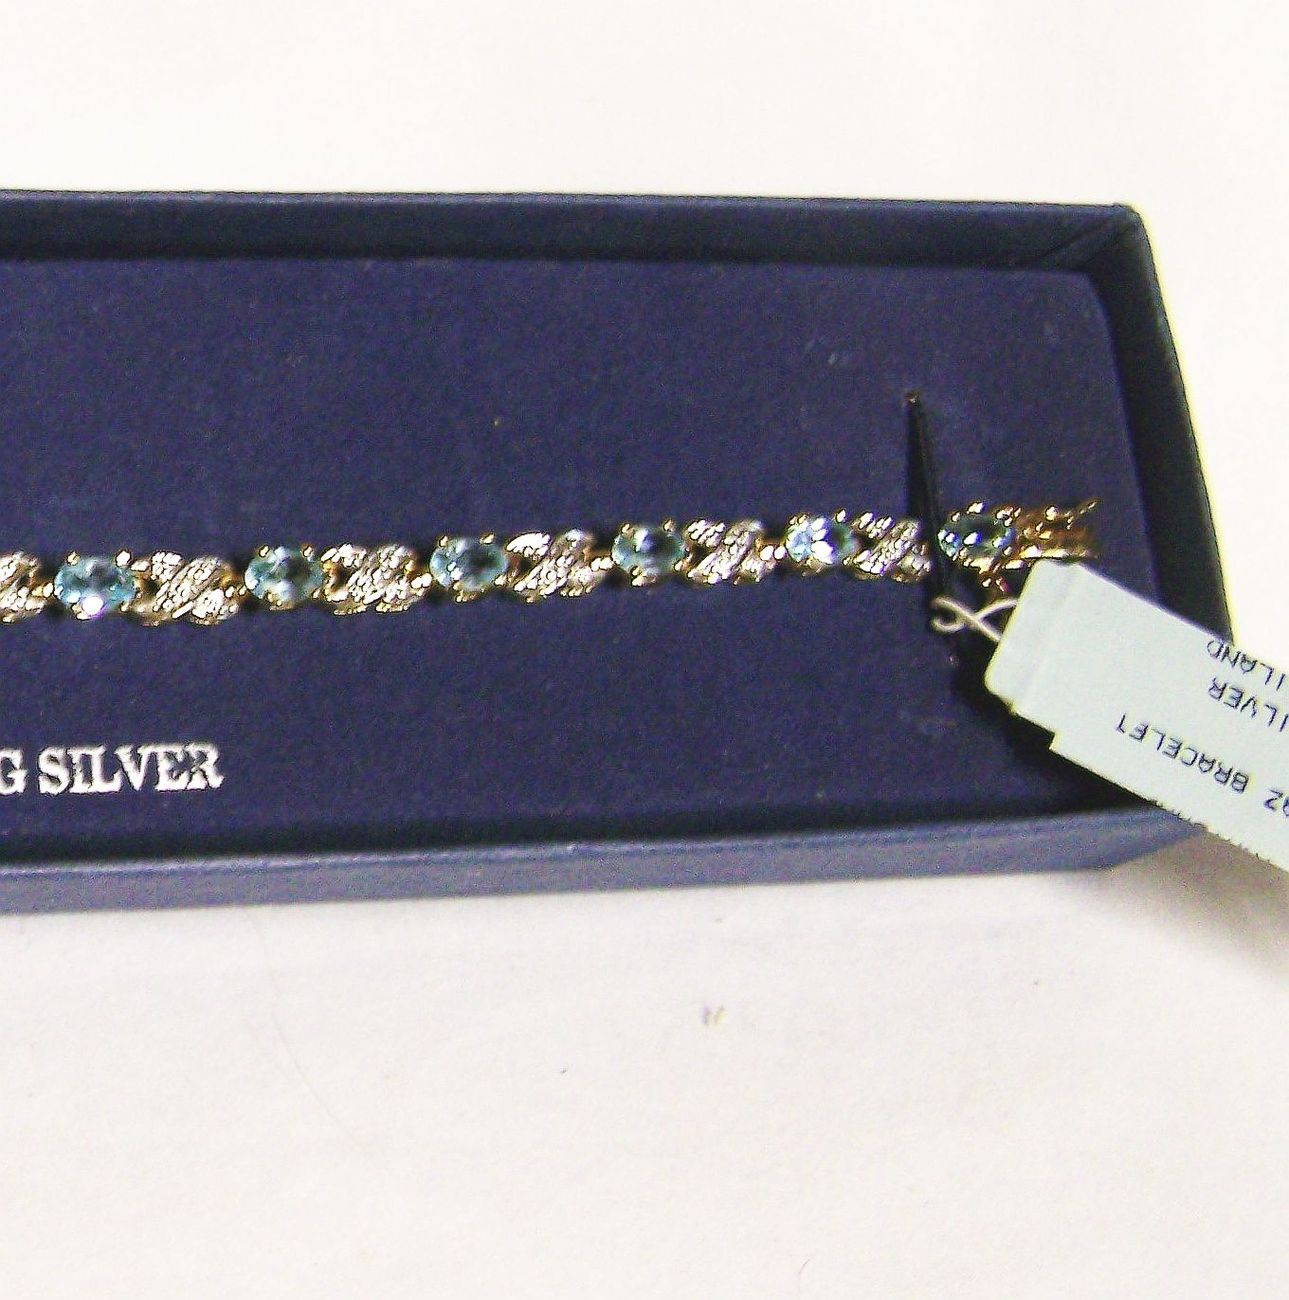 NEW GOLD OVER STERLING SILVER & BLUE TOPAZ TENNIS BRACELET, 7-1/4 INCH